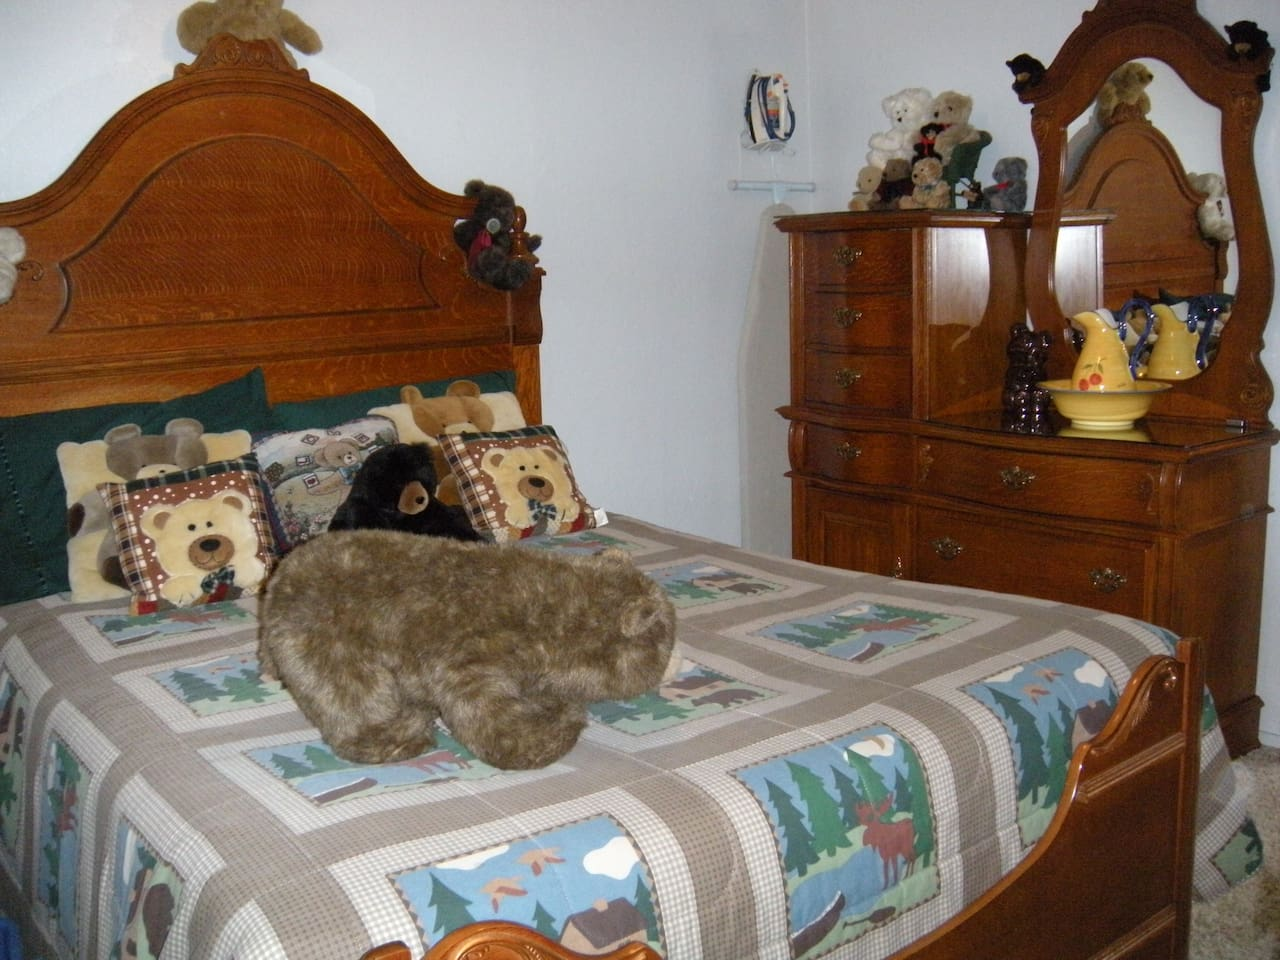 Your Queen Size Bed in the Bear Room